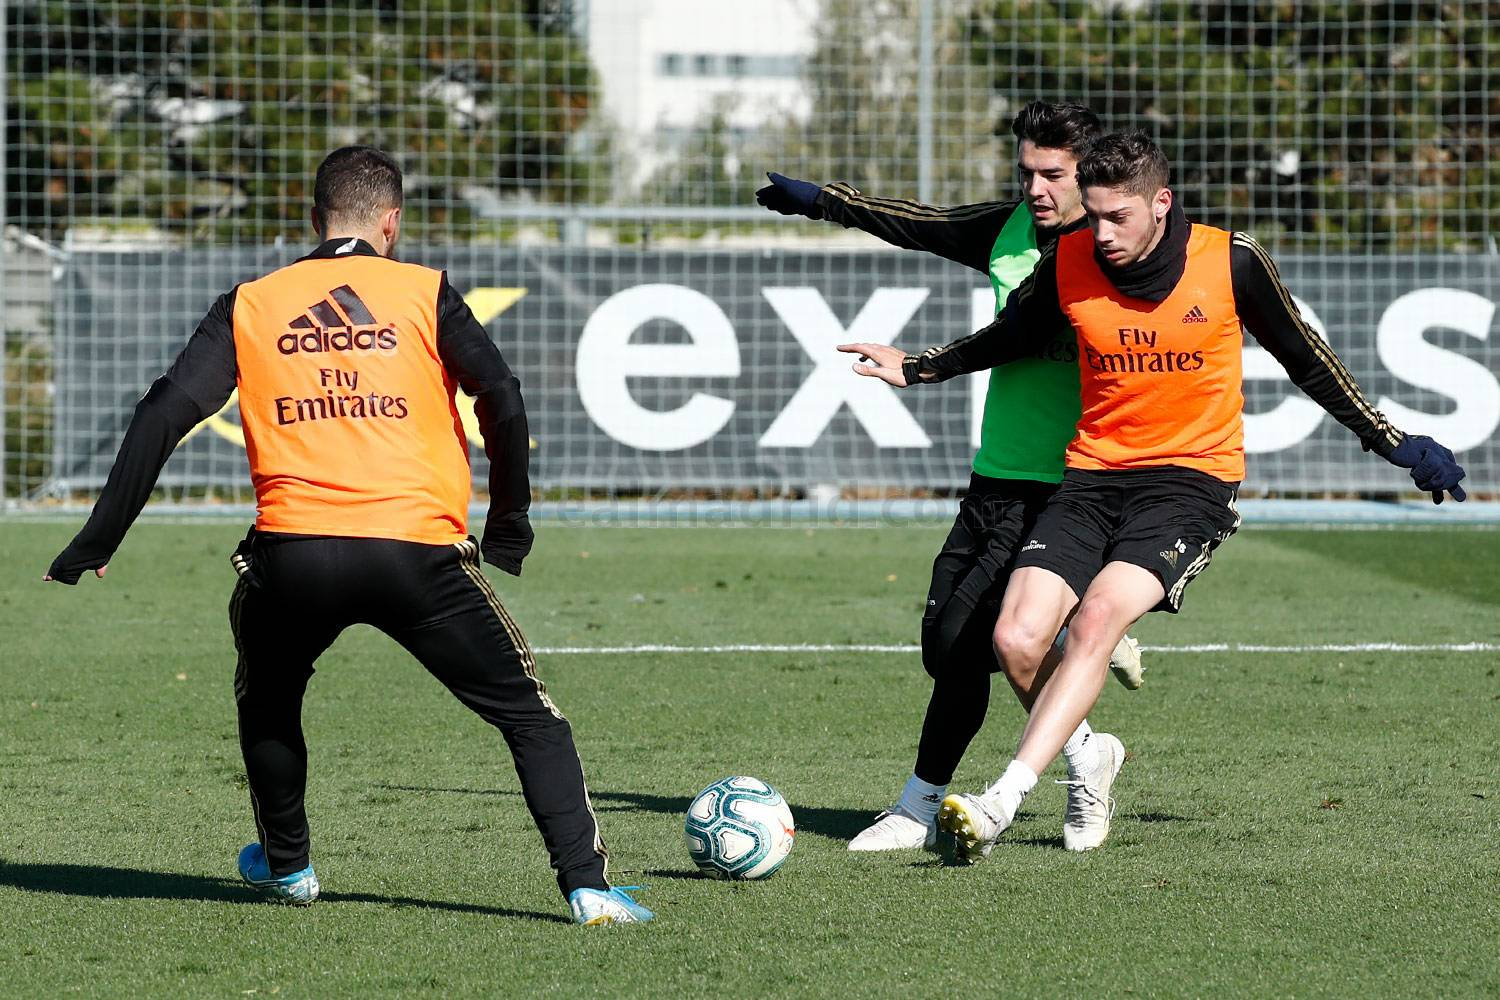 Real Madrid - Entrenamiento del Real Madrid  - 08-11-2019